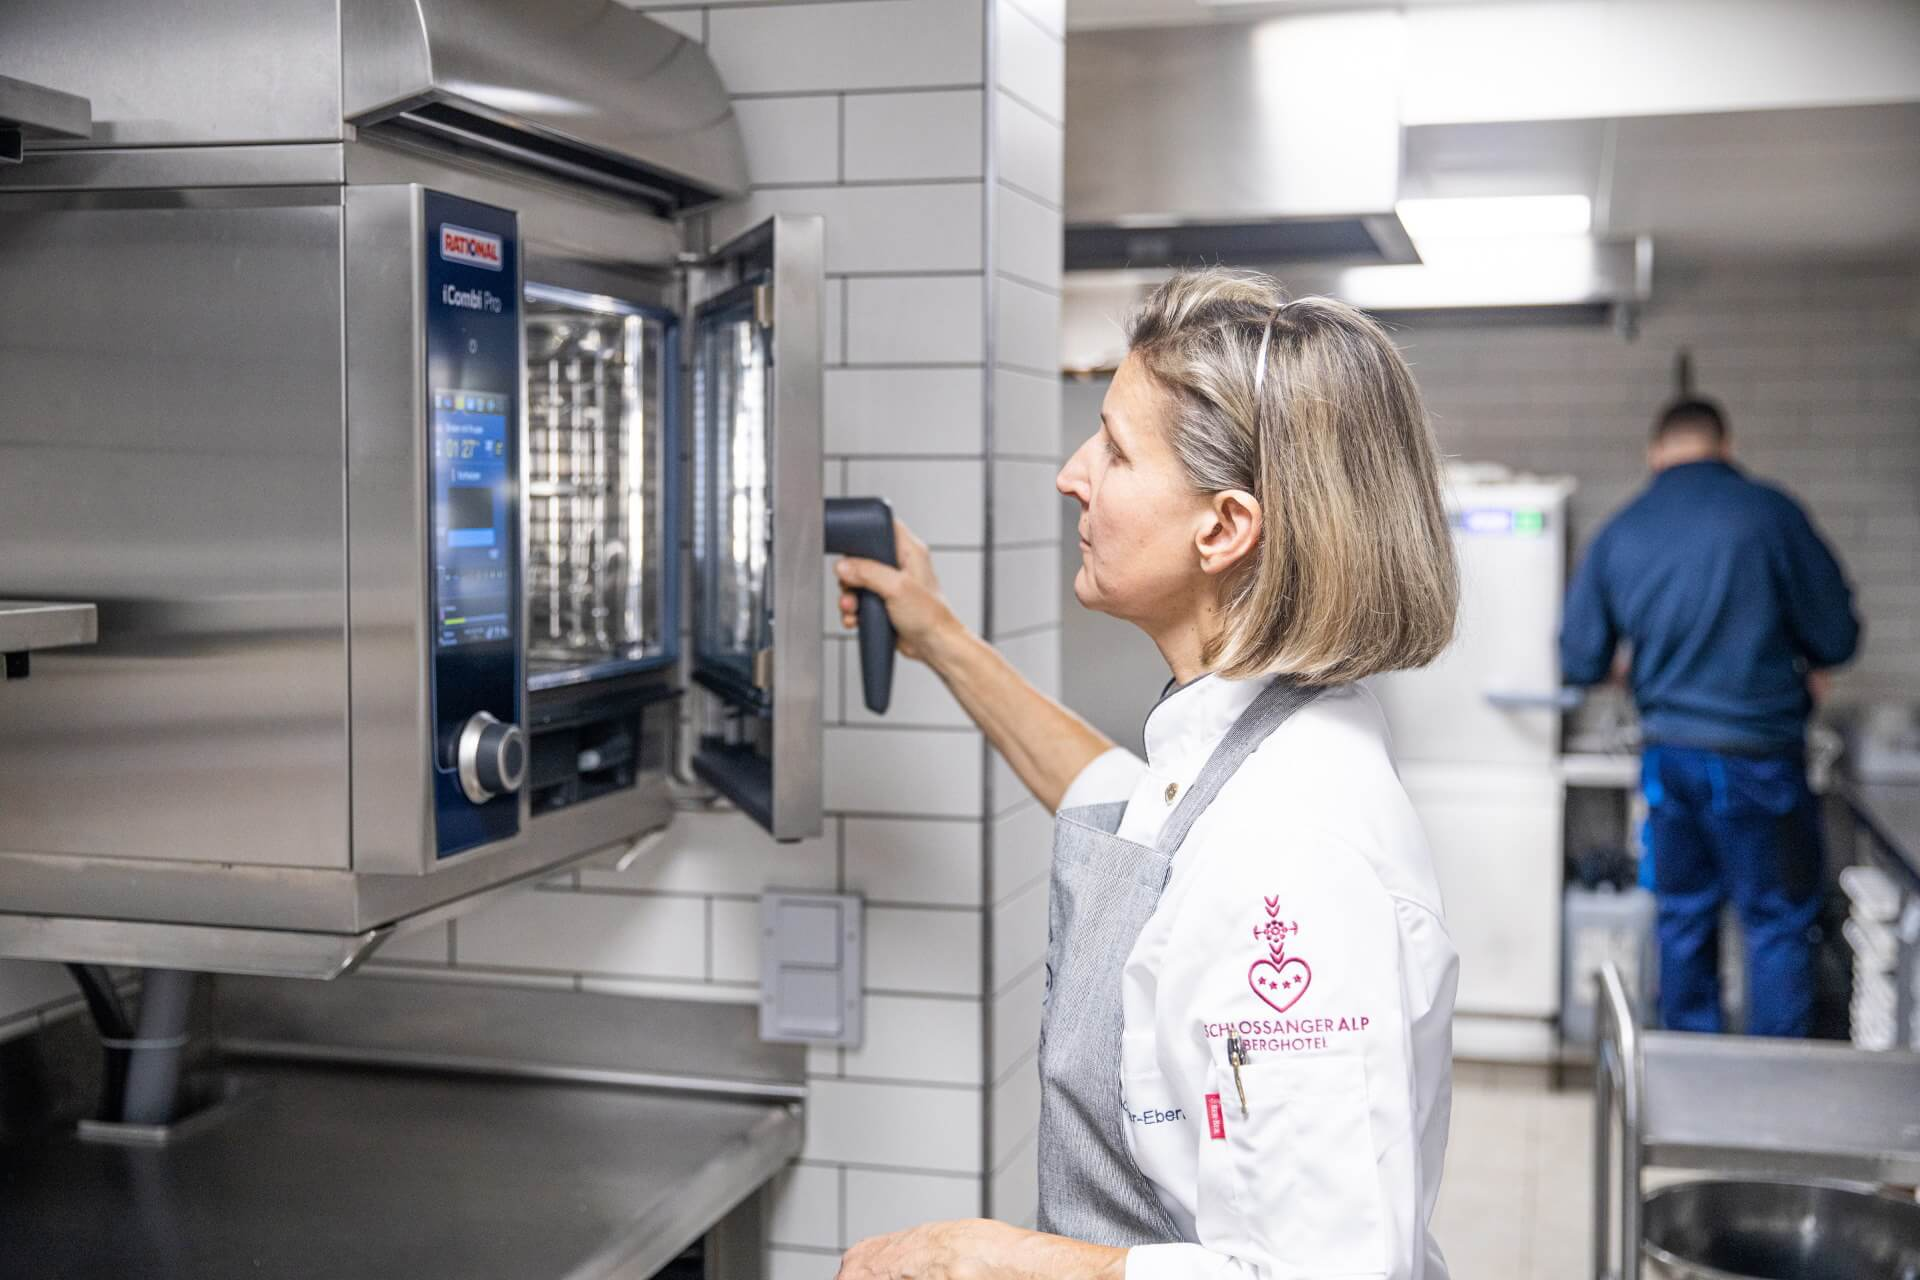 iCombi Pro, new intelligent combi oven from RATIONAL